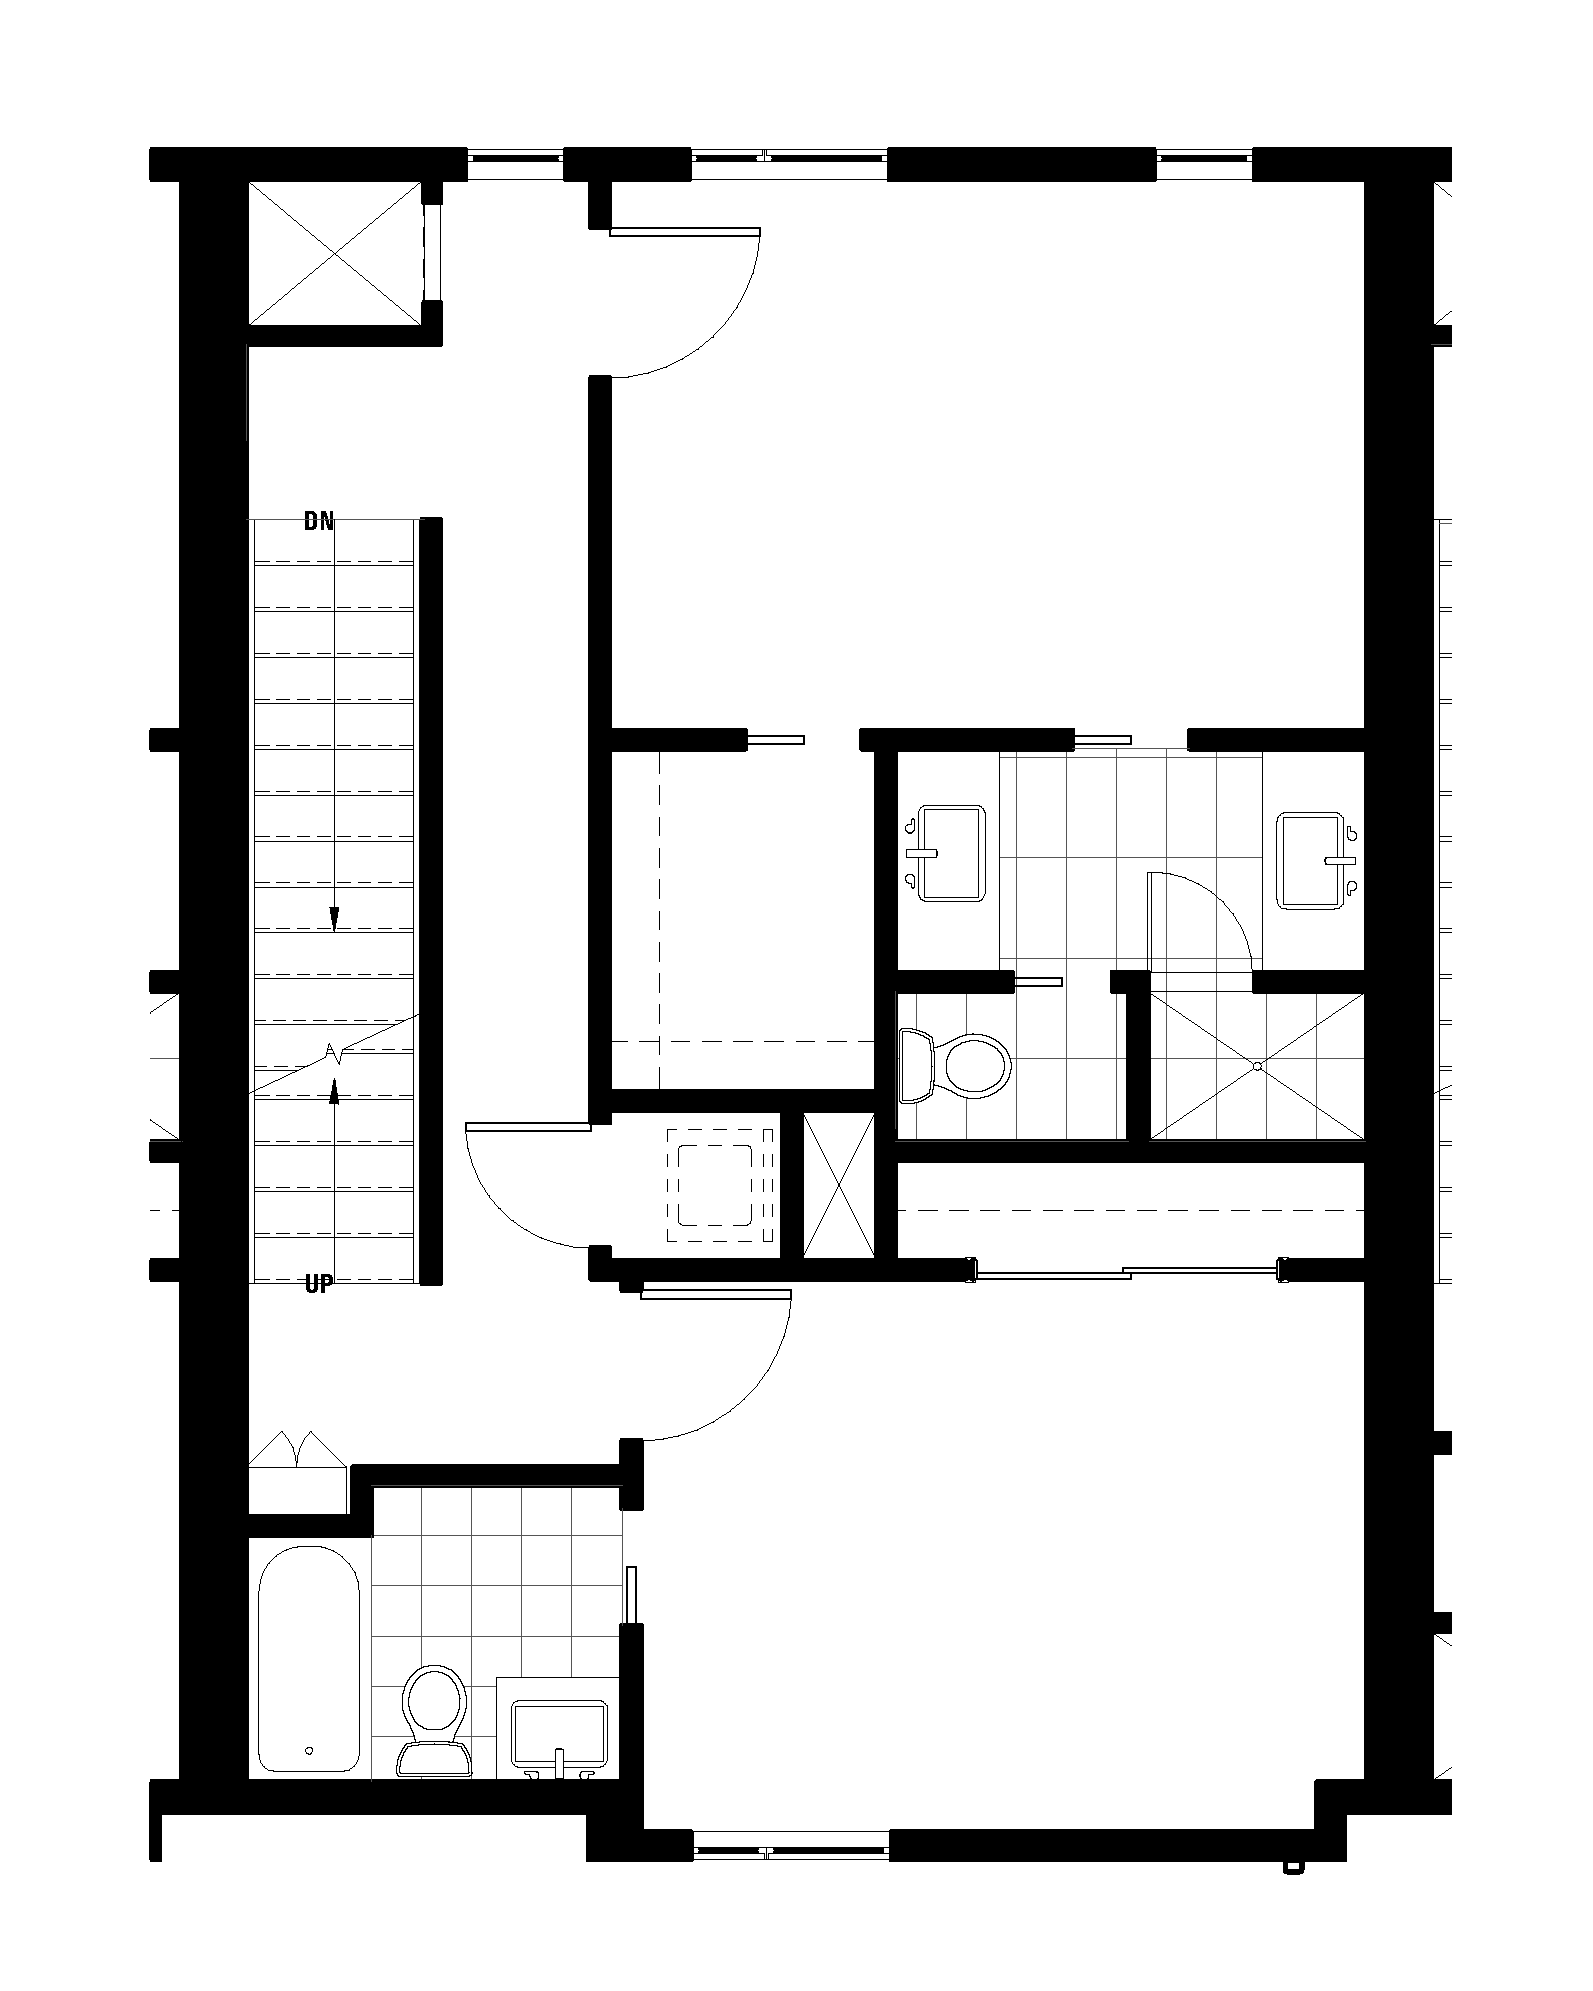 Second Floor - Master and Guest